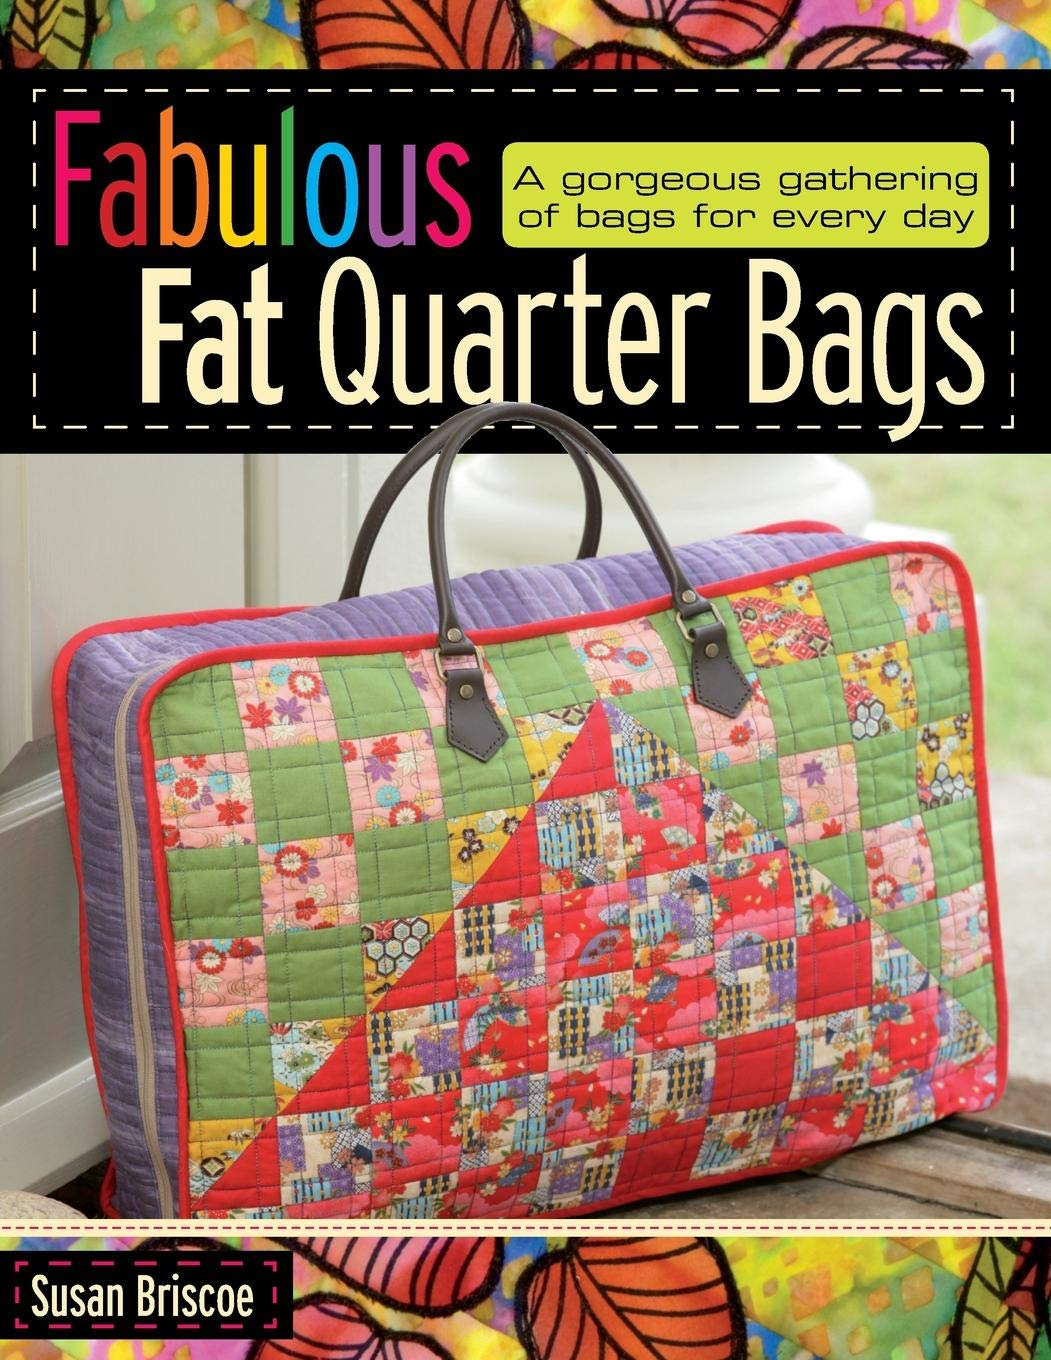 Books about bags